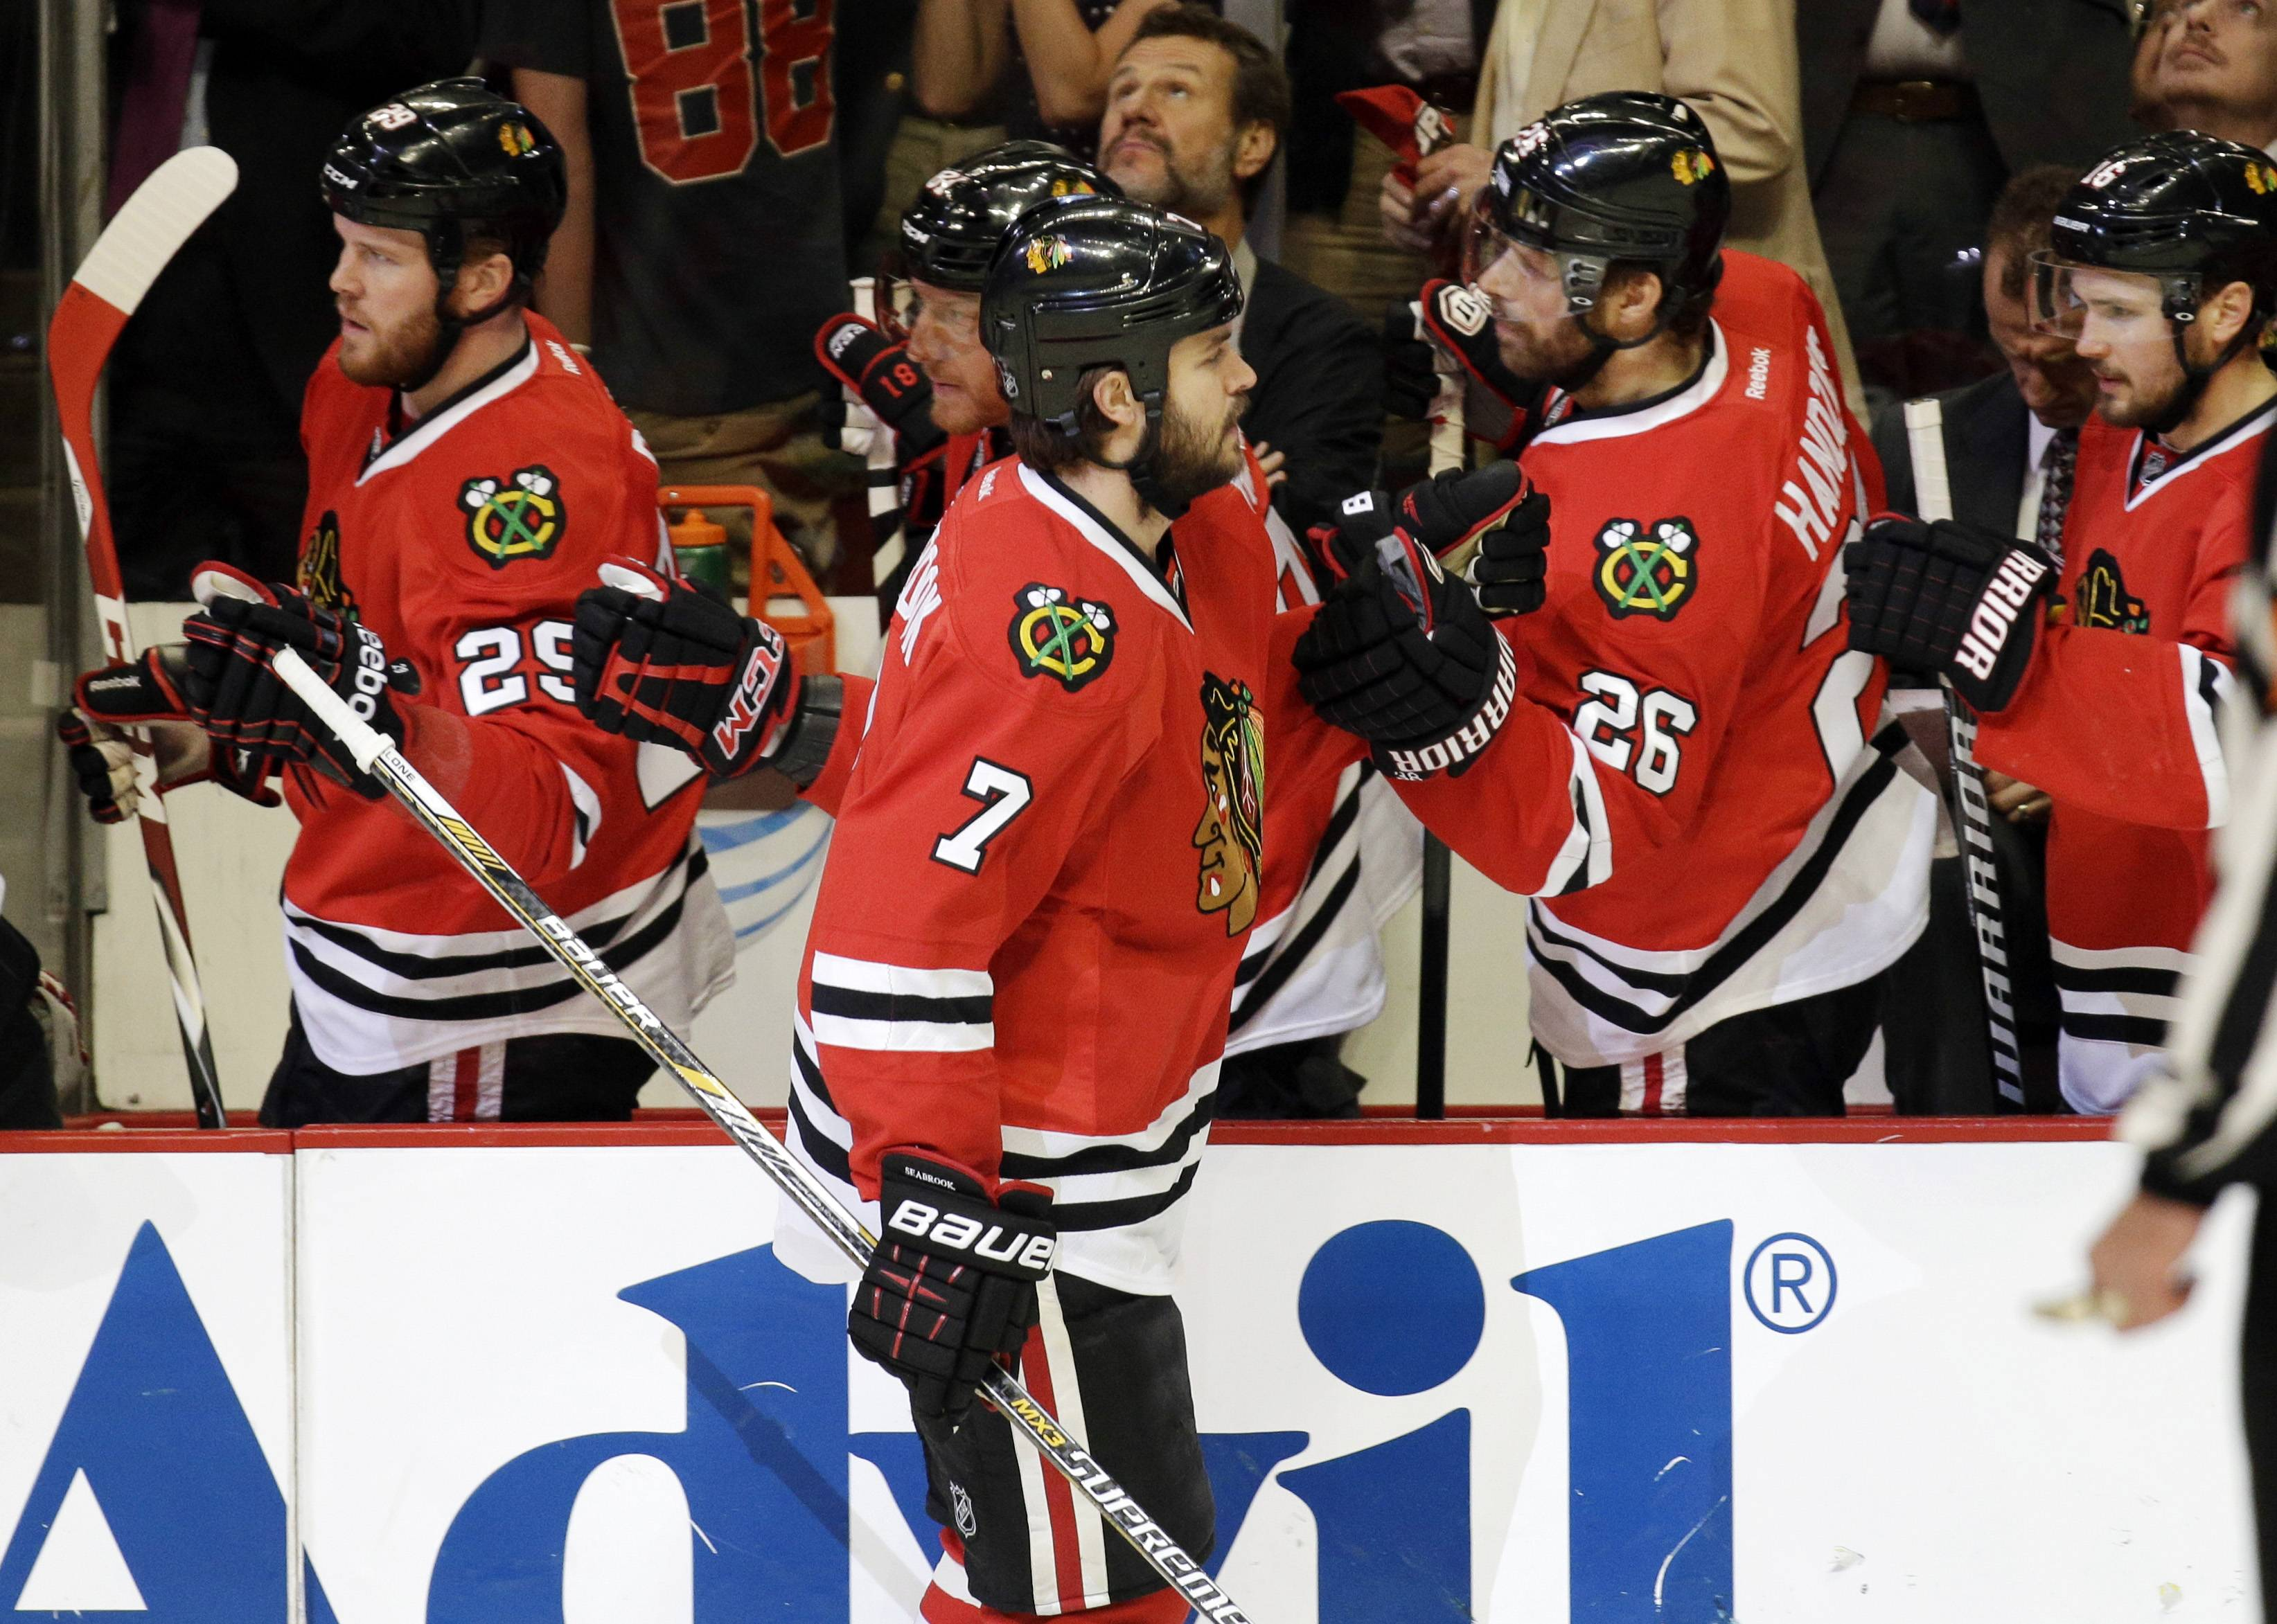 Chicago Blackhawks defenseman Brent Seabrook celebrates a goal with